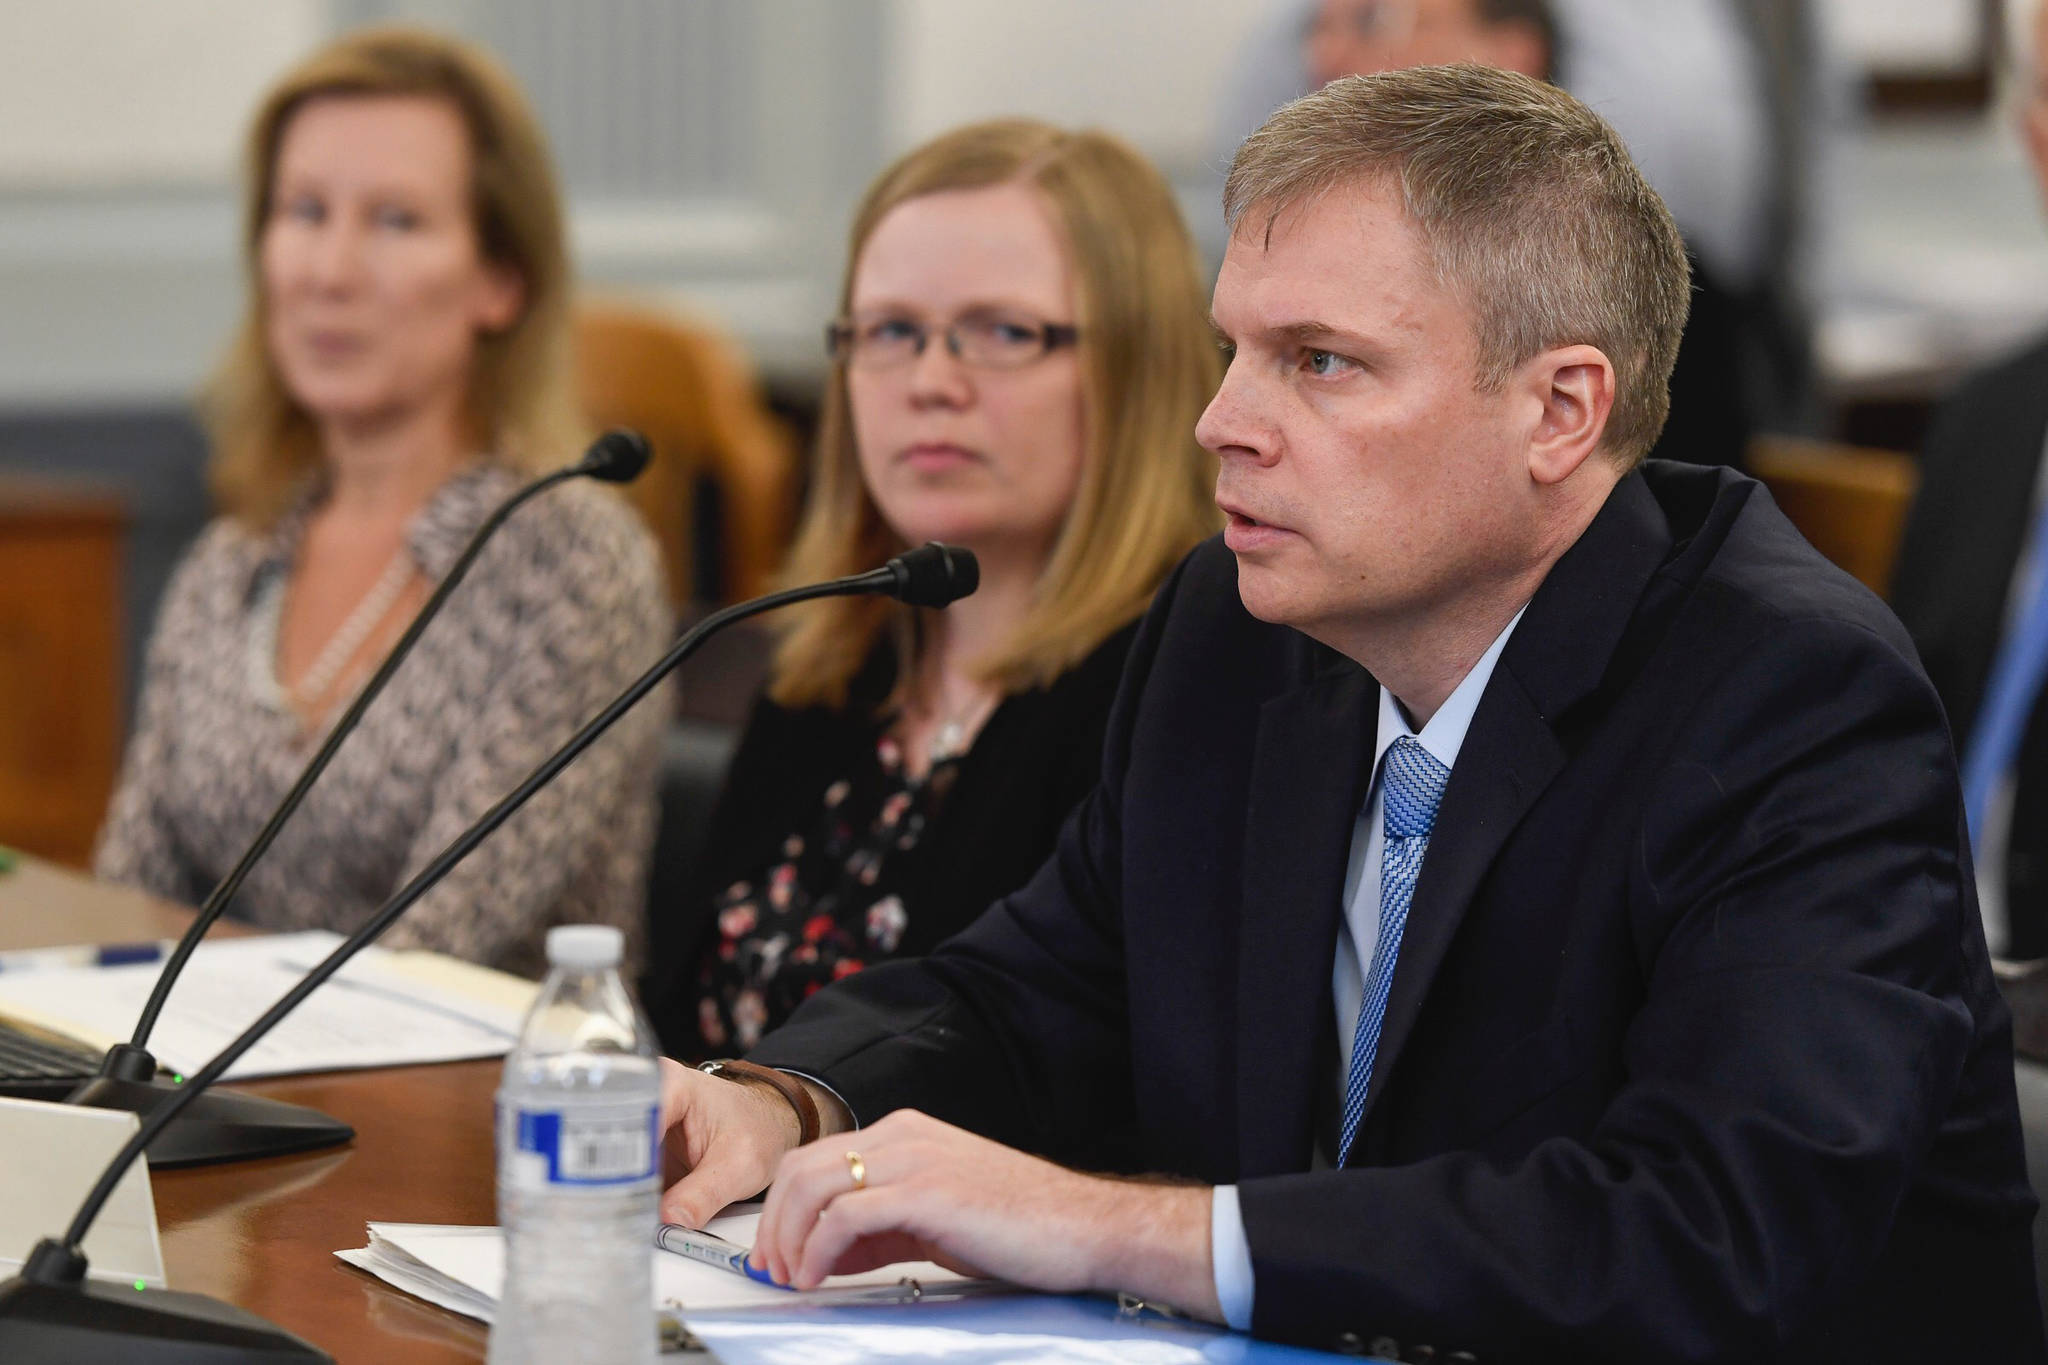 Dr. Michael Johnson, Commissioner of Alaska Department of Education and Early Development, speaks about a reduced funding for education to the Senate Finance Committee at the Capitol on Monday Feb. 18, 2019. (Michael Penn ι Juneau Empire)